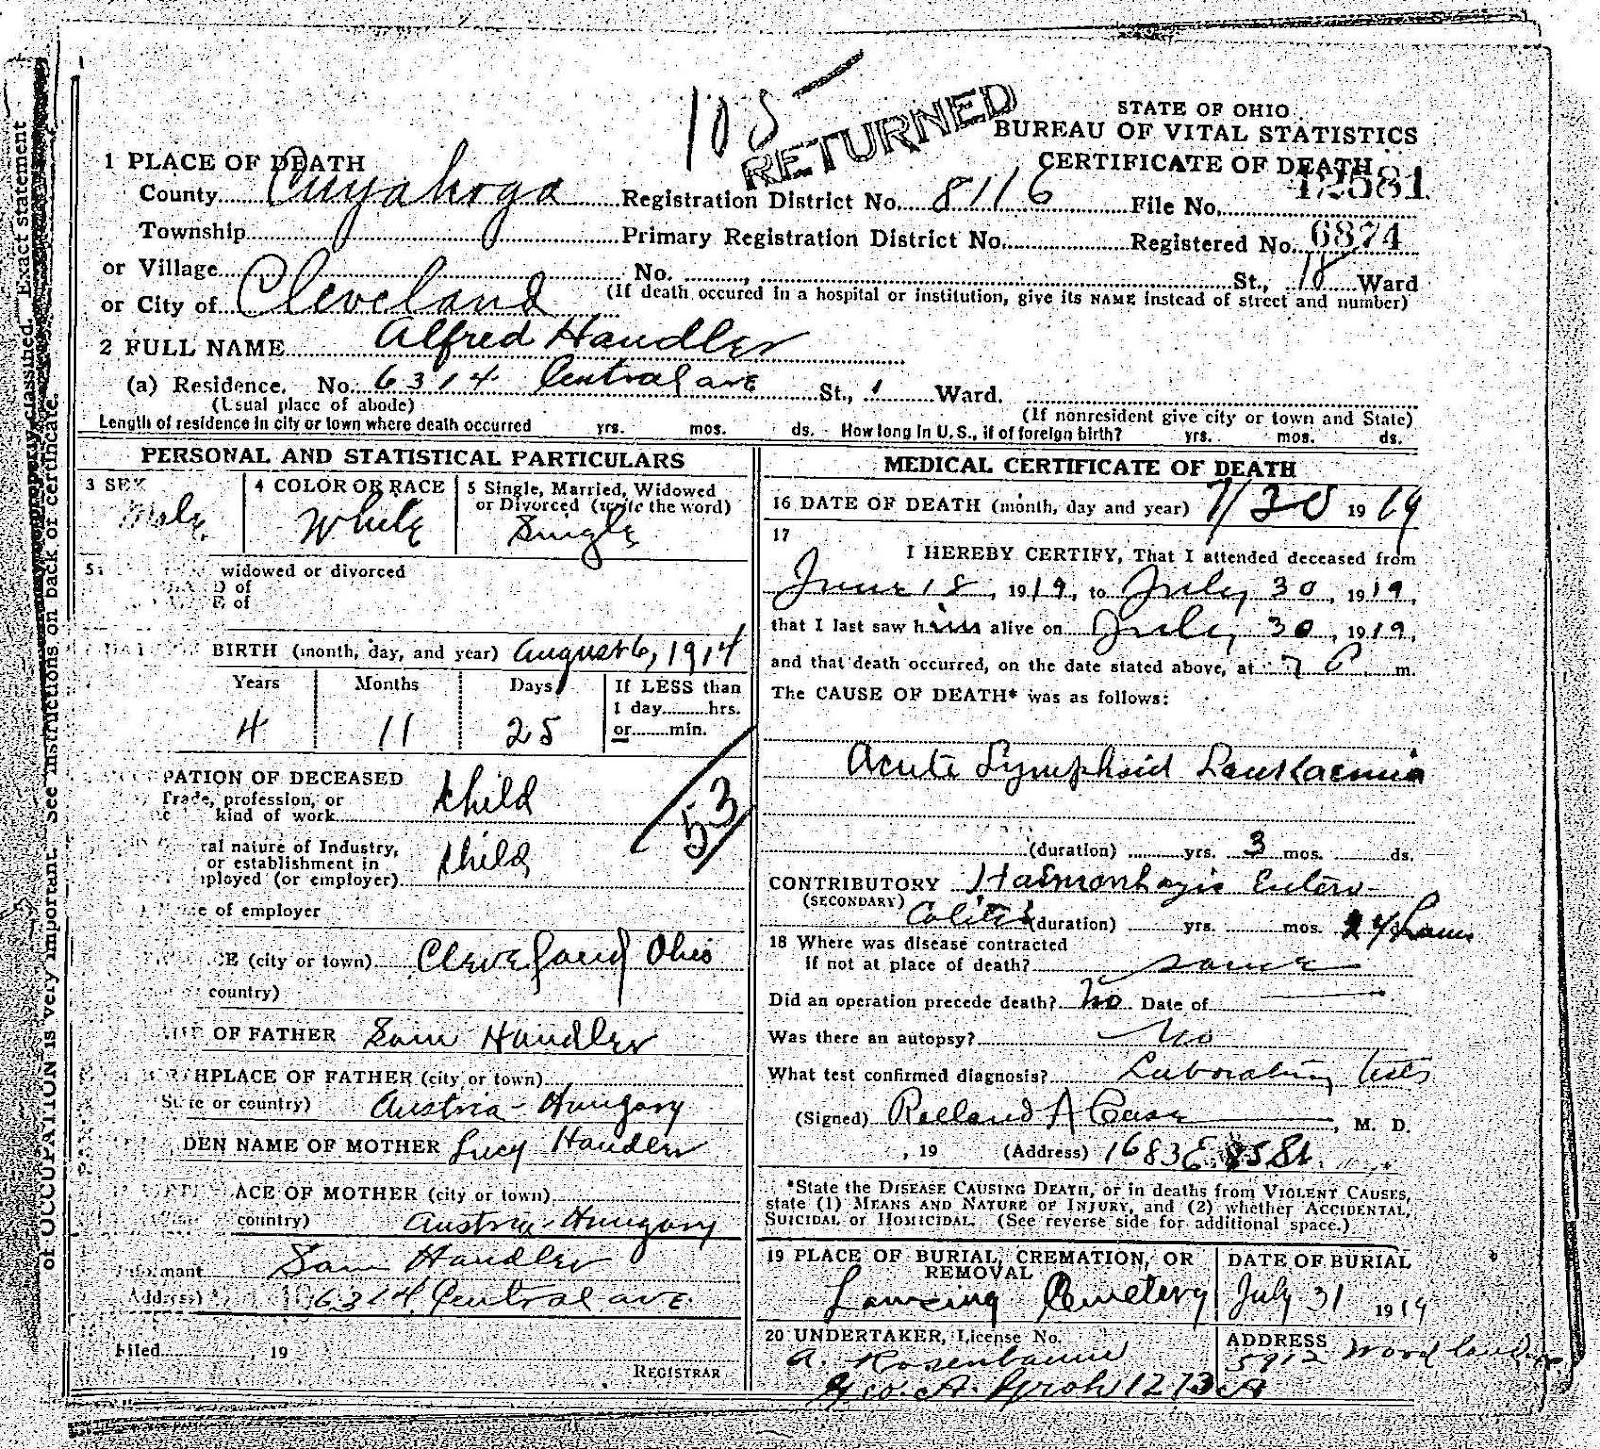 A jewish genealogy journey sympathy saturday a death followed according to sams brother josef handlers naturalization papers josef and lena handlers son alfred was born on august 10 1919 less than two weeks after aiddatafo Choice Image